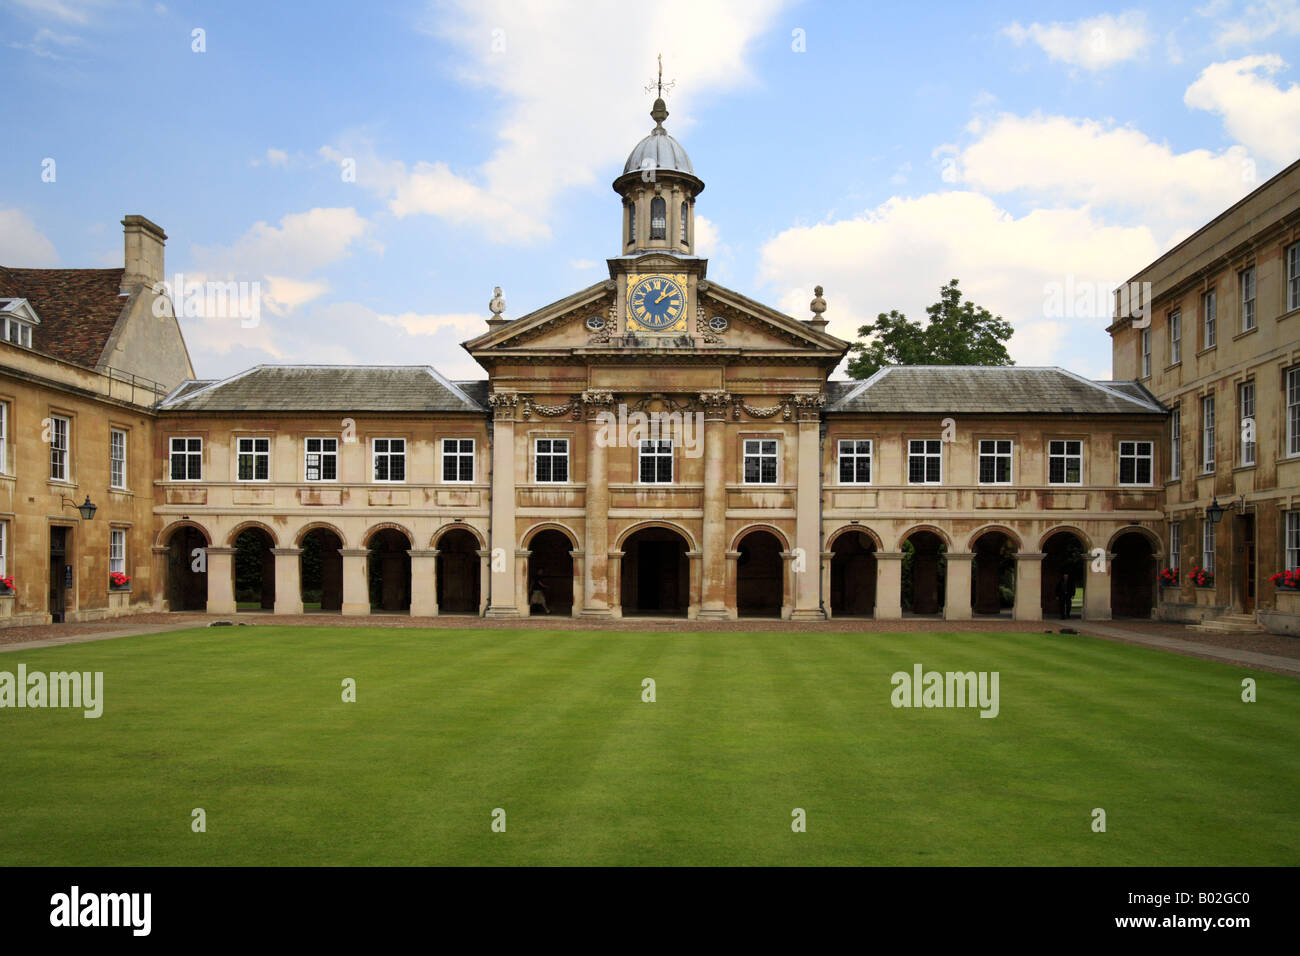 'Emmanuel College' Cambridge university courtyard stripped lawn and college buildings. - Stock Image